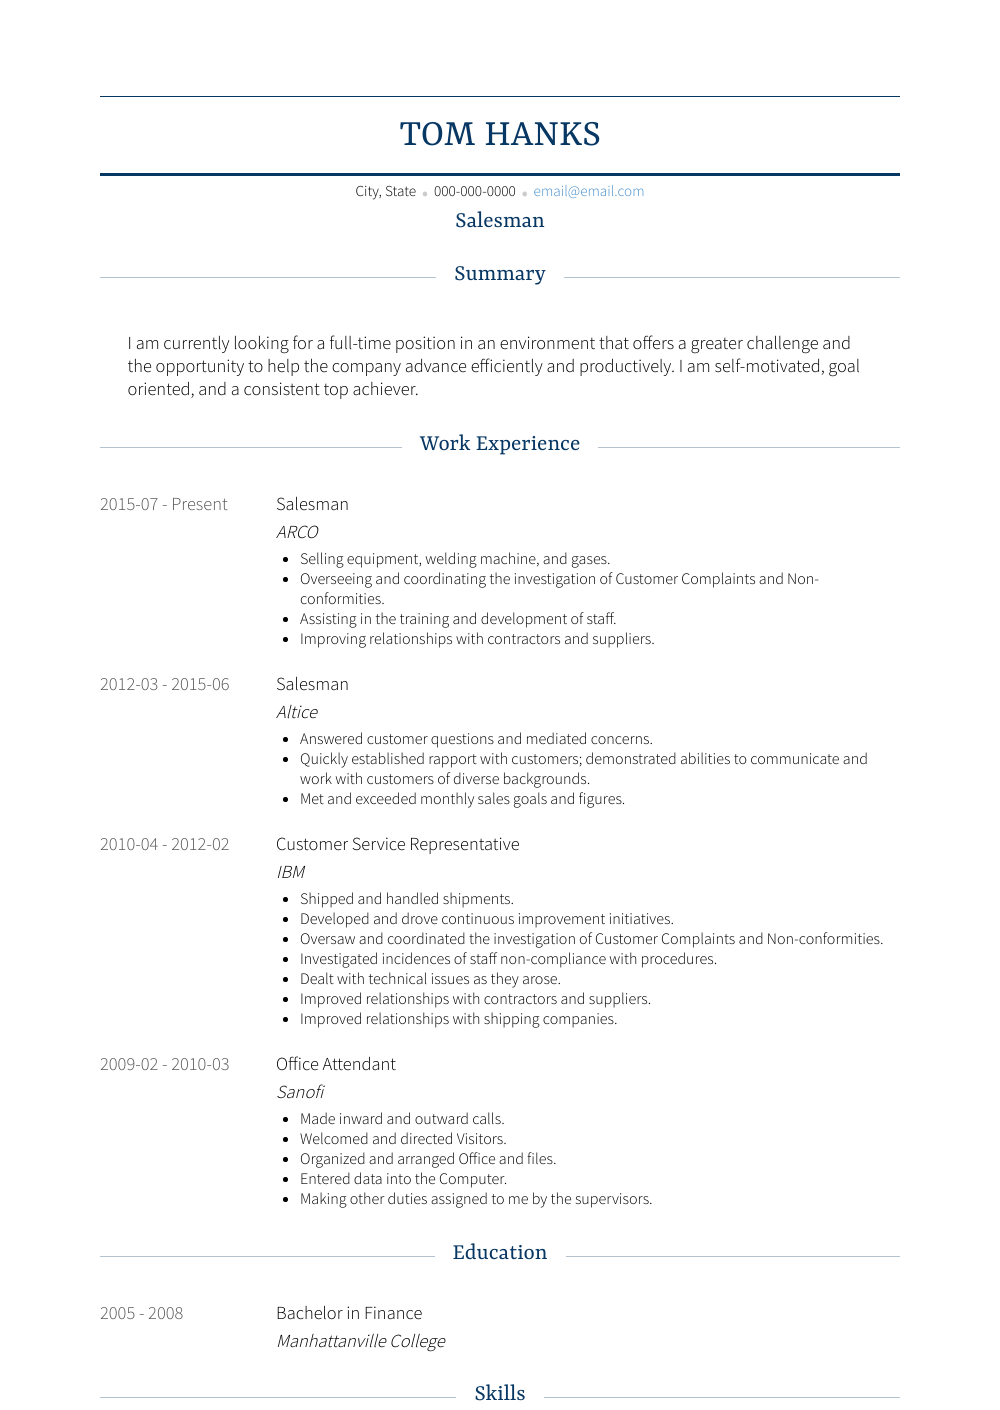 Sales Person Resume Sample